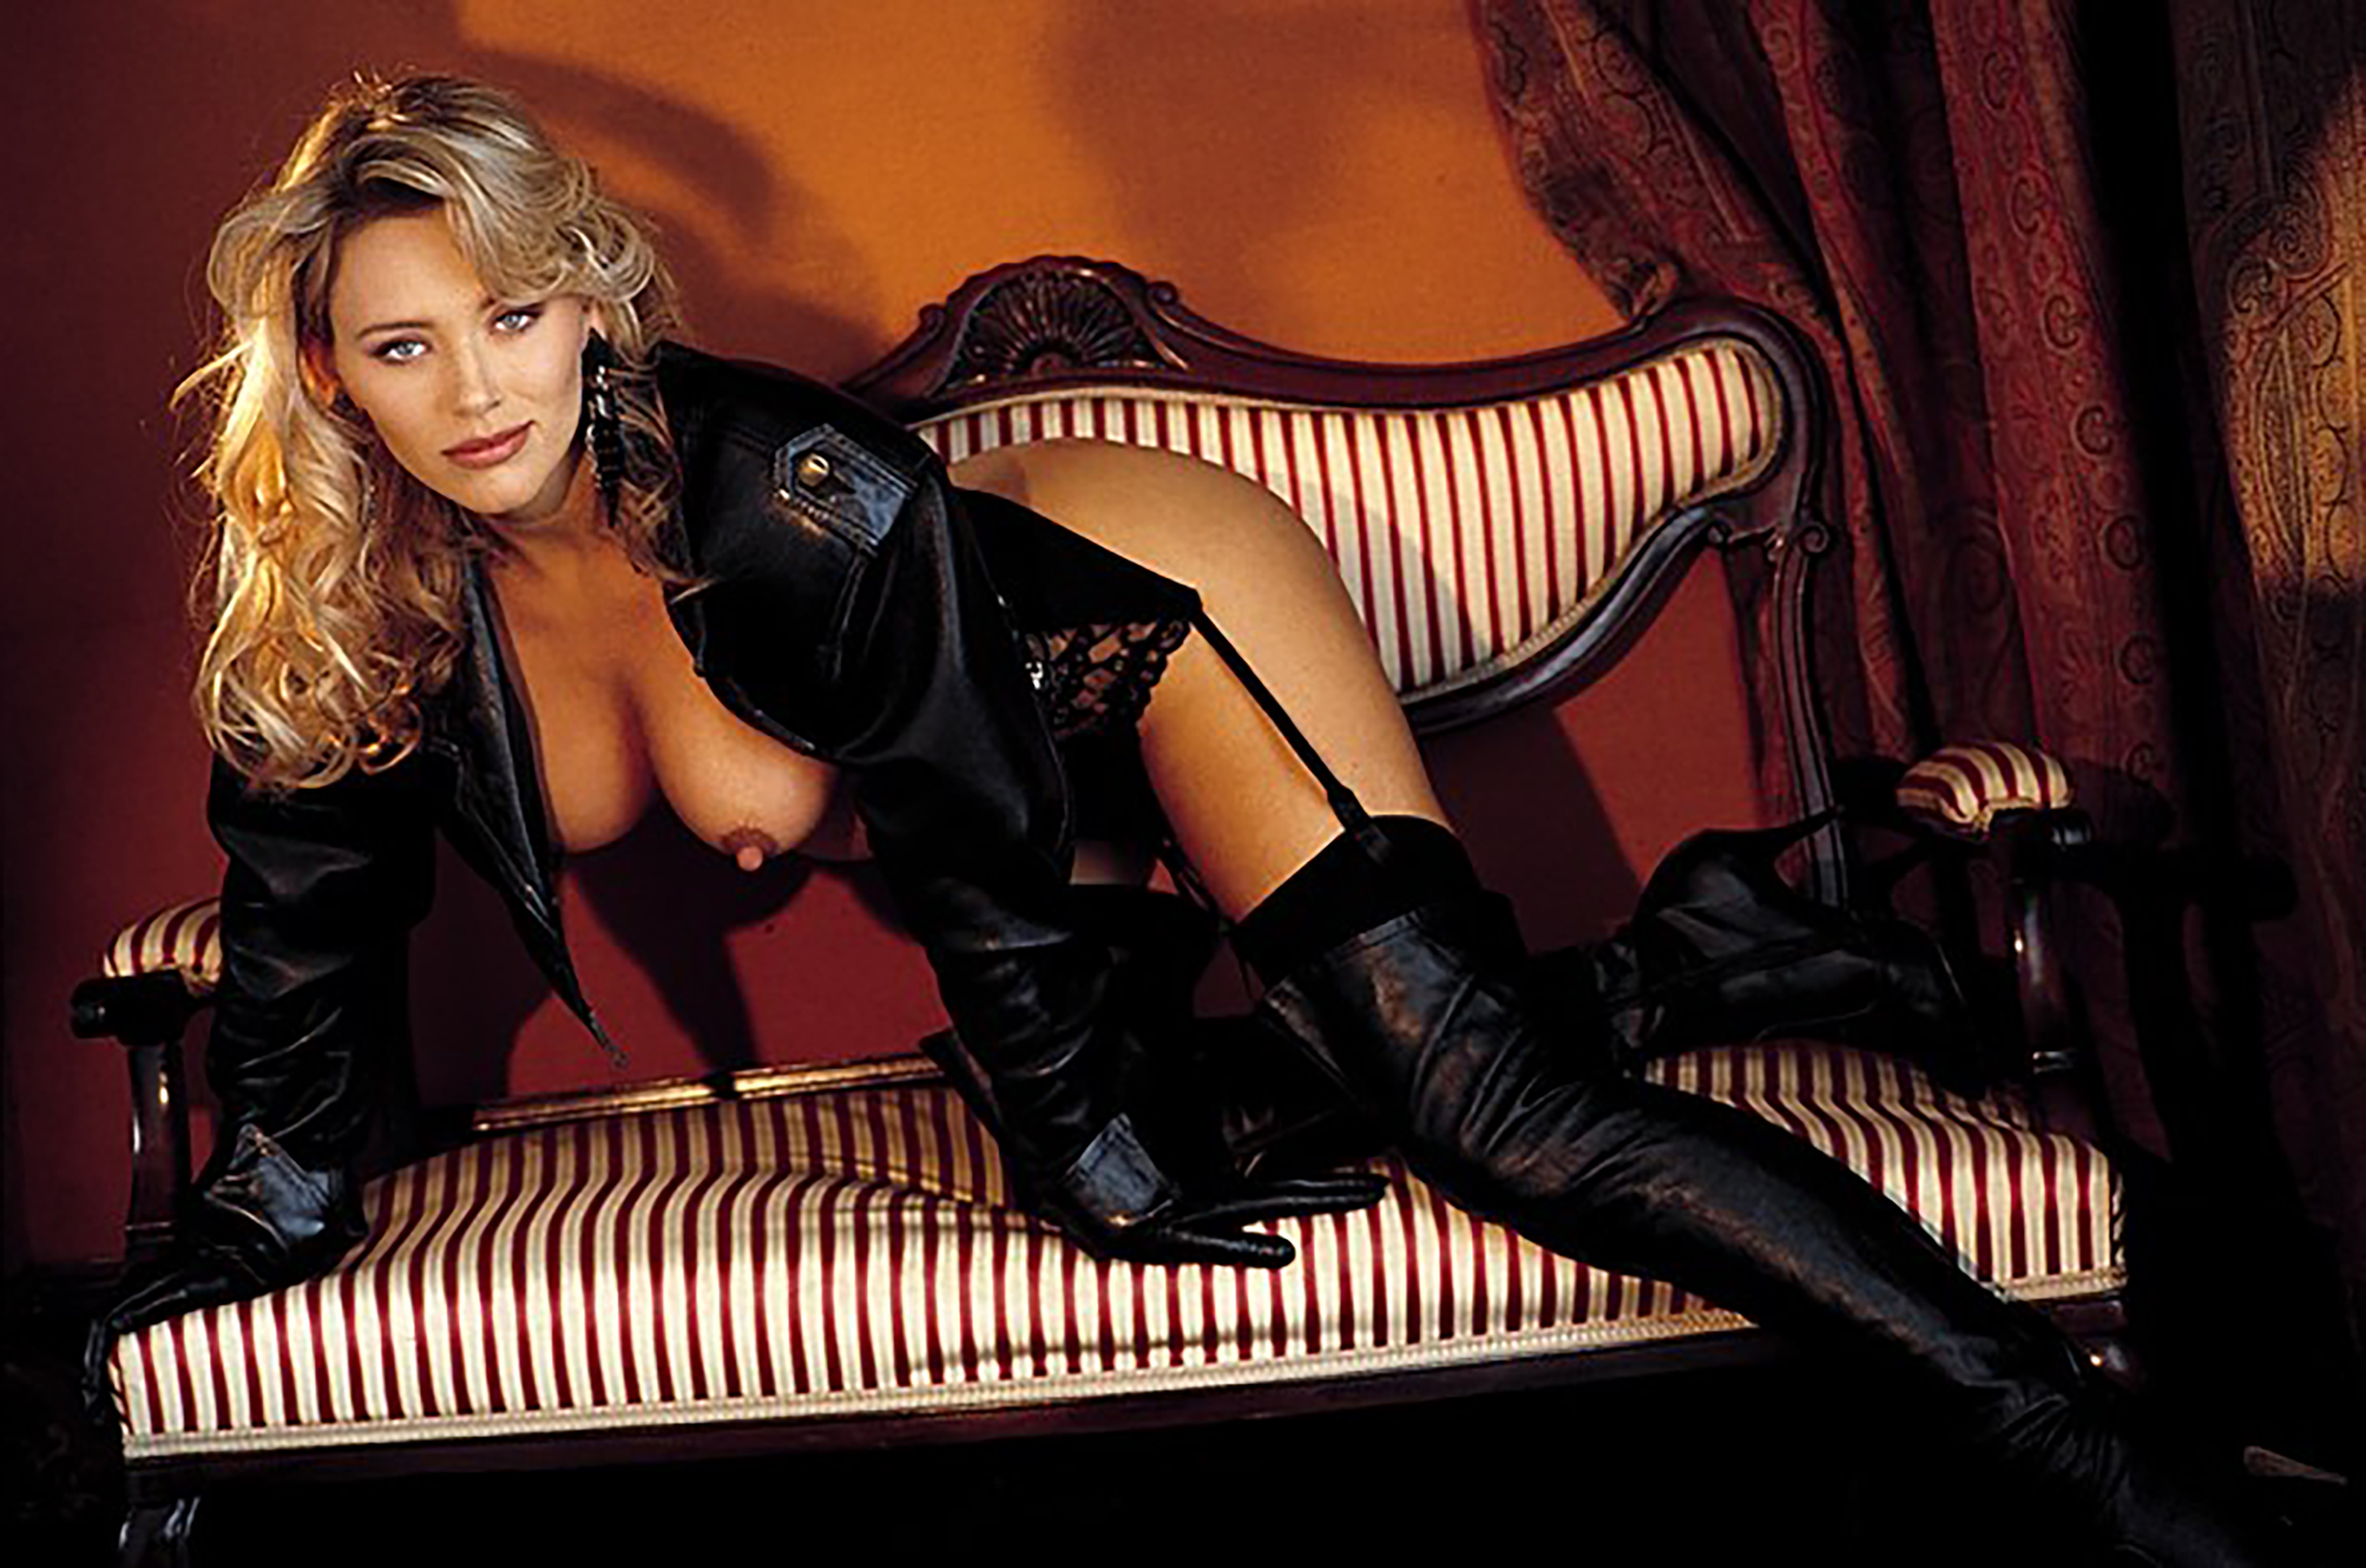 Happens. Let's Playmate in leather boots